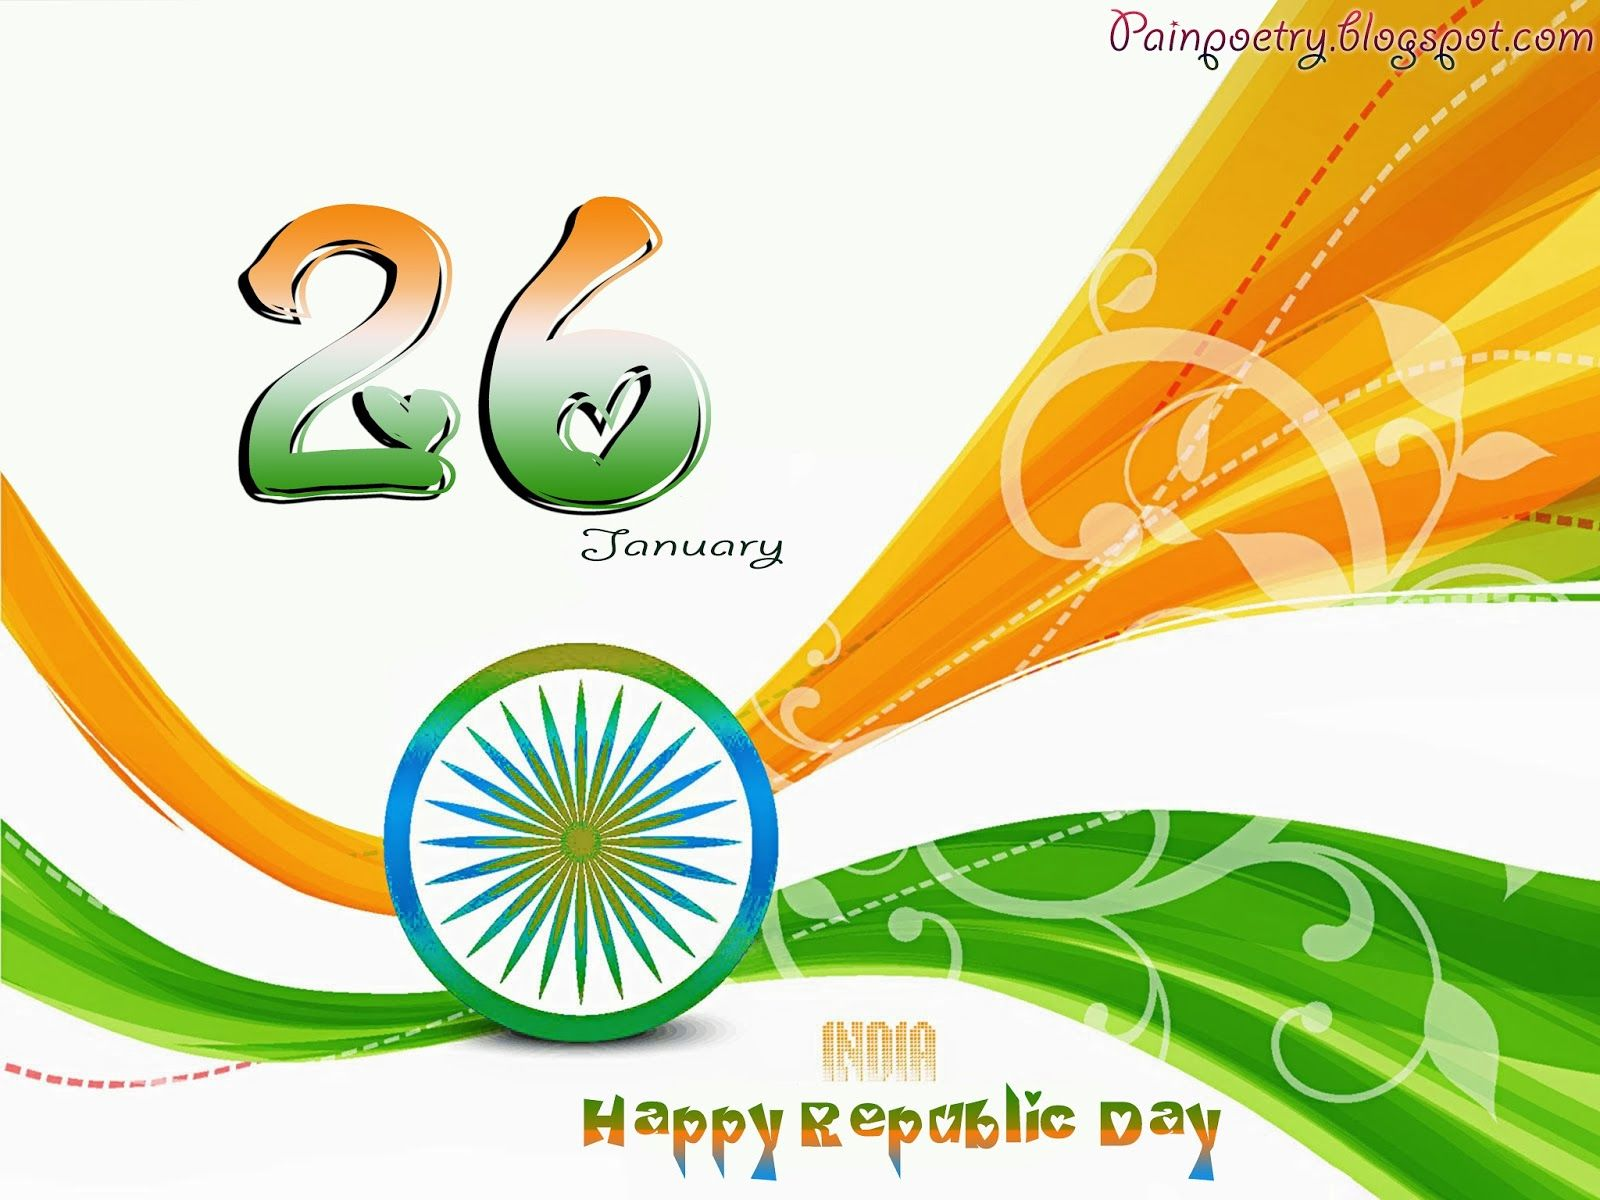 Worlds Best Poetry Republic Day Greetings Recipes to Cook 1600x1200